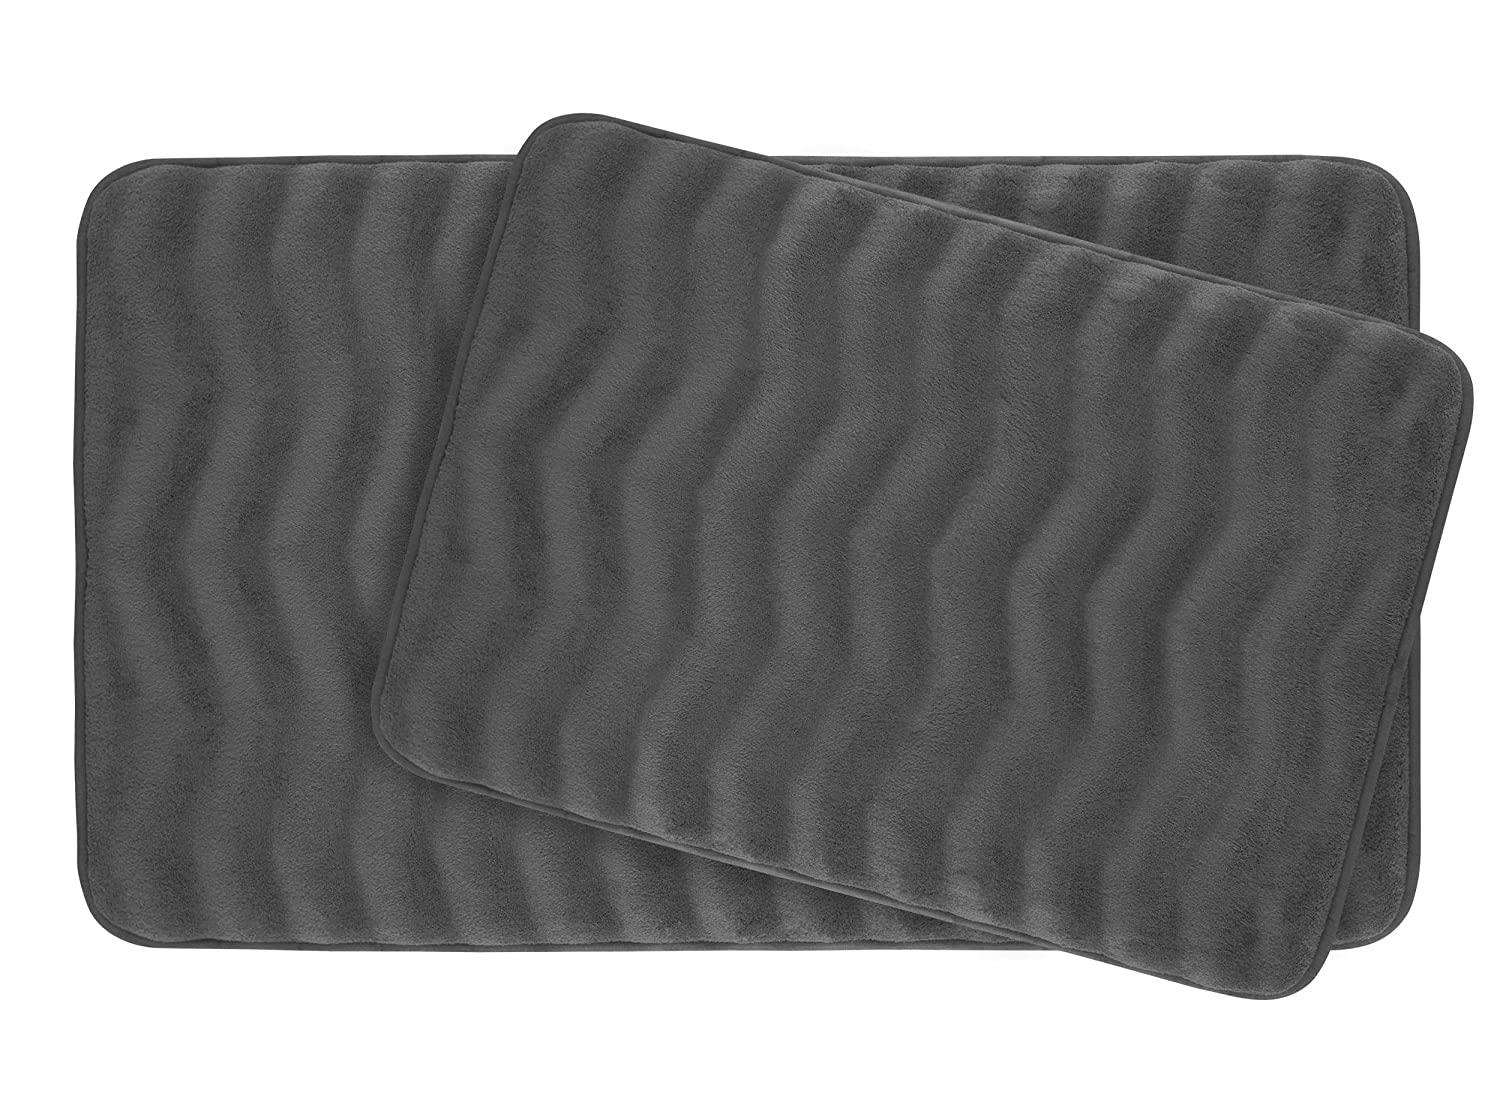 Bounce Comfort Waves Extra Thick Memory Foam Bath Mat Set - Plush 2 Piece Set with BounceComfort Technology, 20 x 32 in. Linen Creative Home Ideas YMB002572